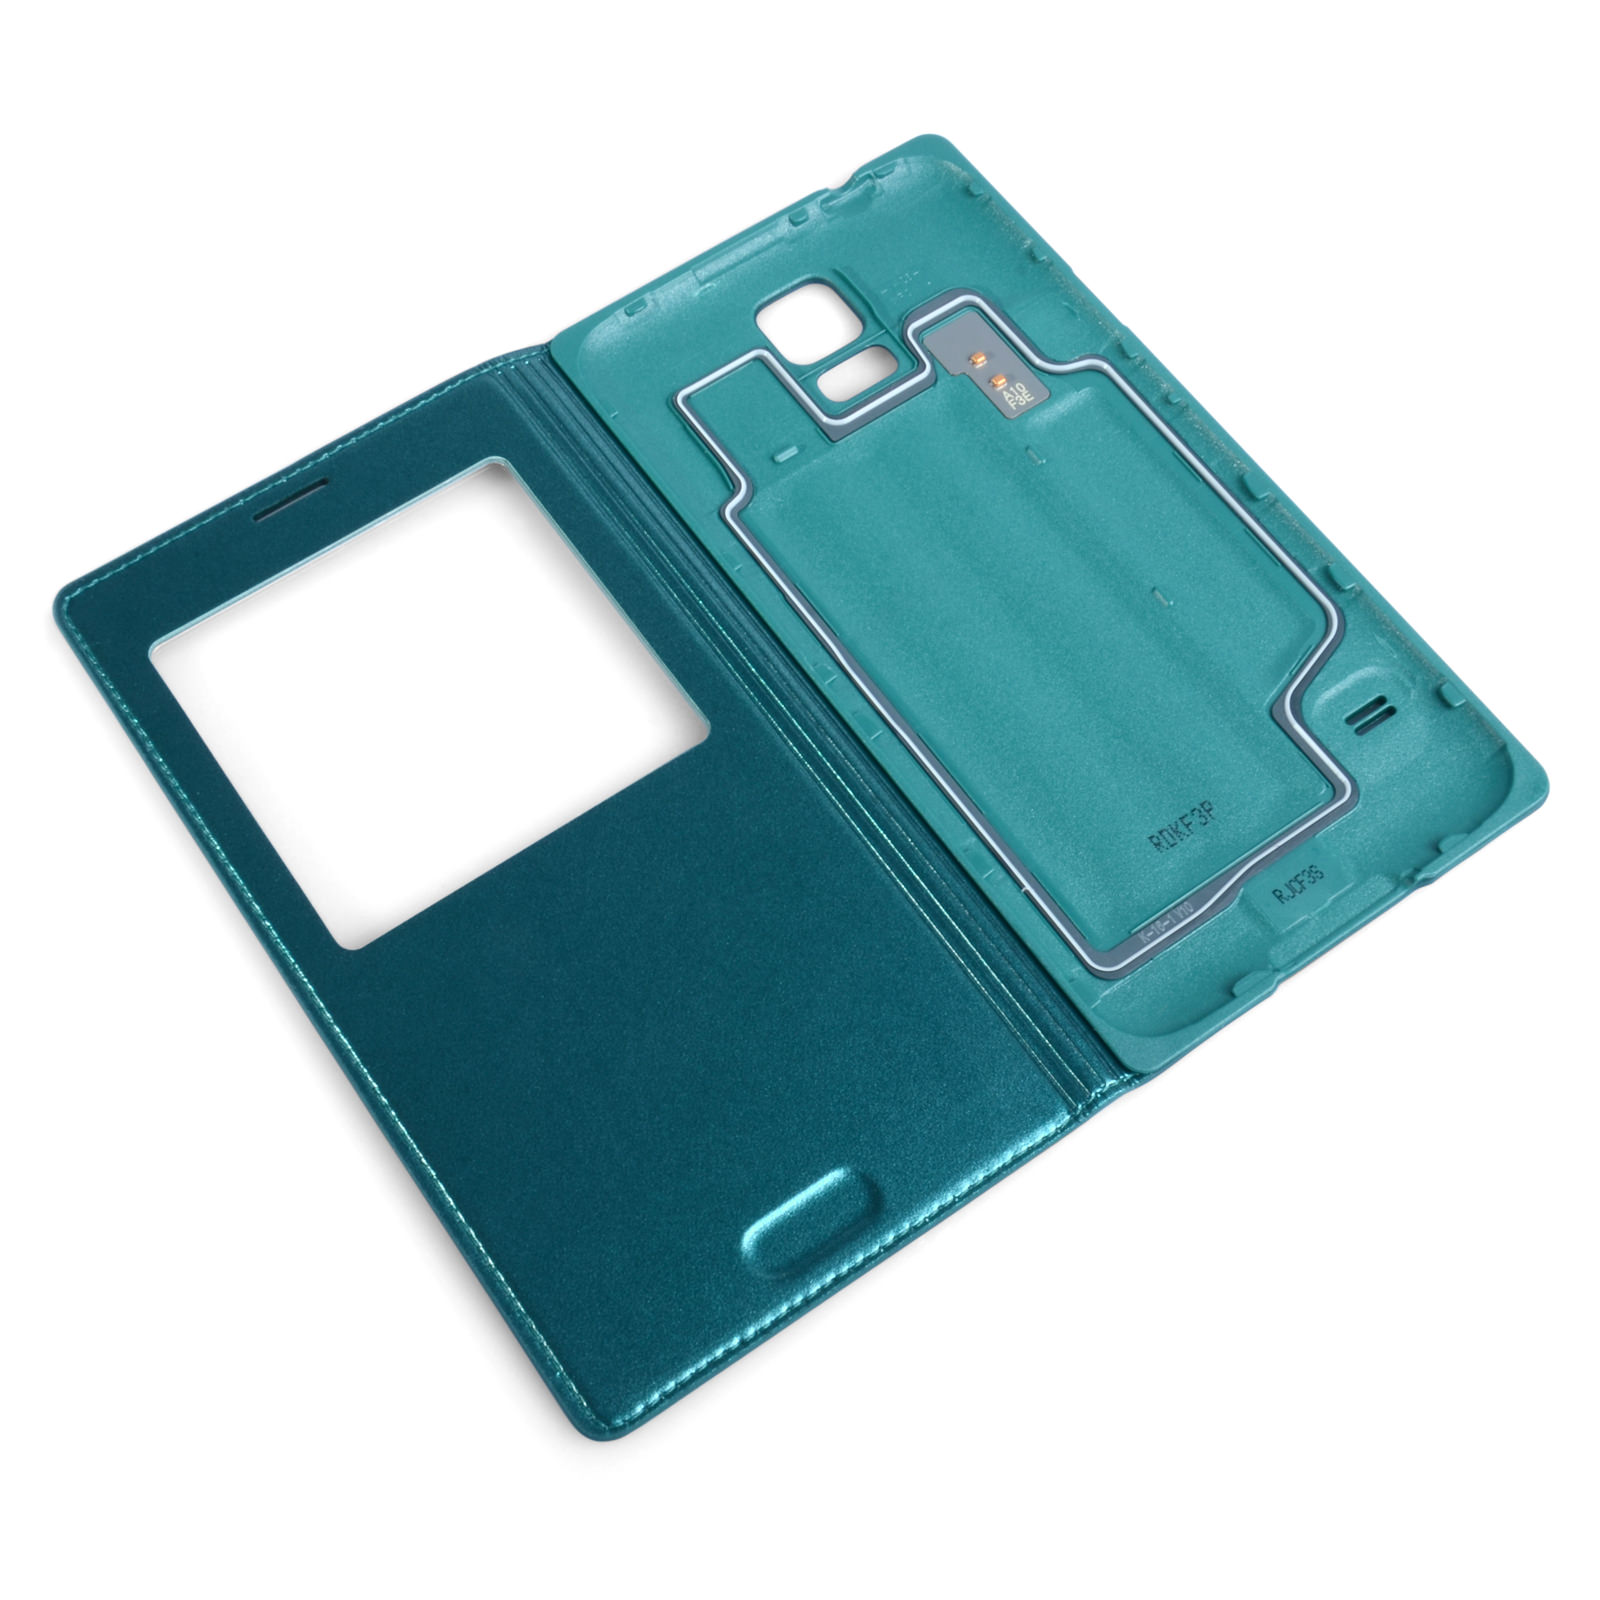 Official Samsung Galaxy S5 S View Cover - Blue Topaz